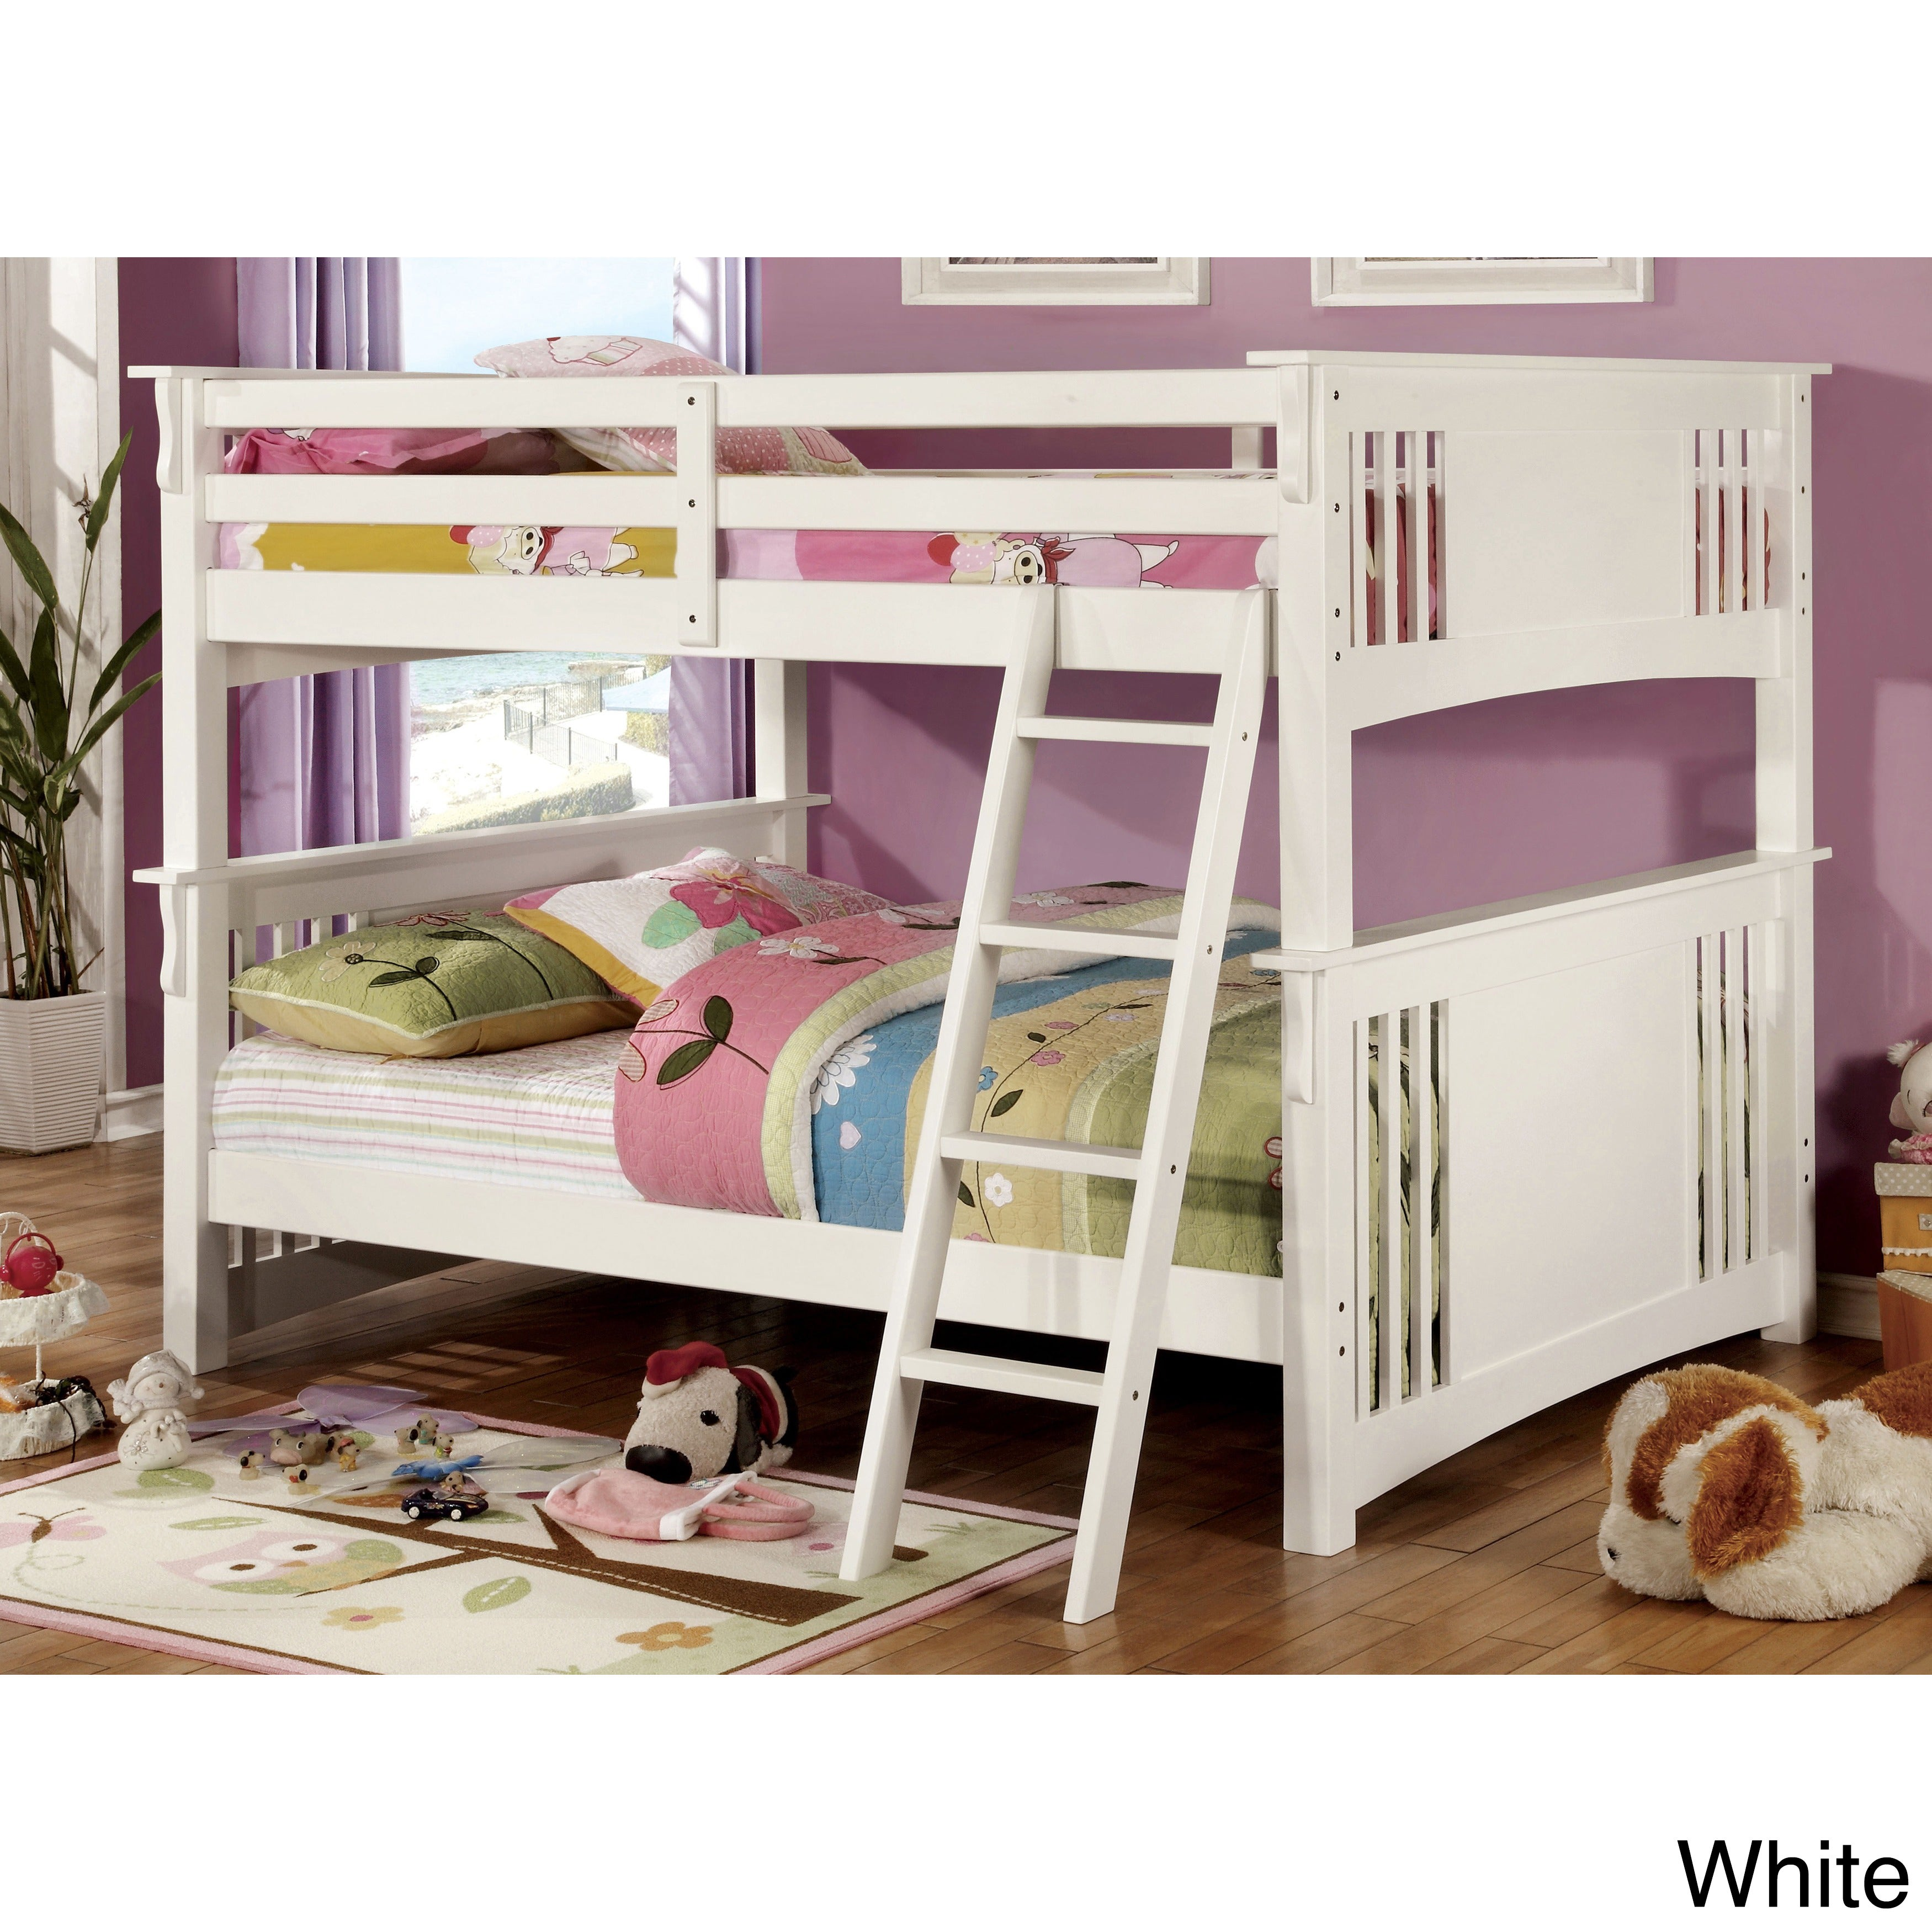 products number dunk pulse kids bright bed ne mission bunk item full over